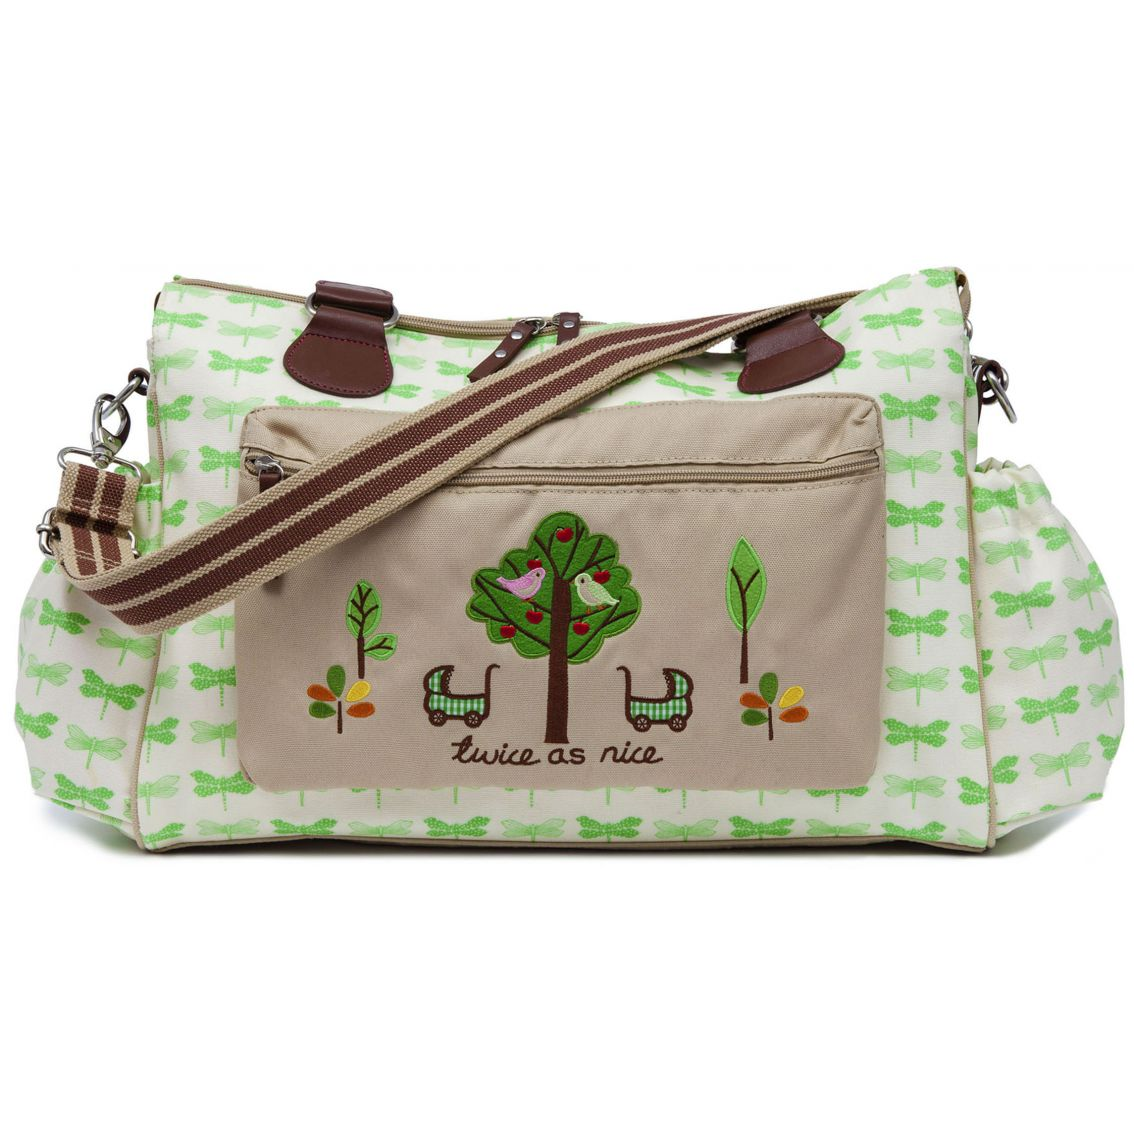 pink lining twice as nice green dragonflies twin changing bag. Black Bedroom Furniture Sets. Home Design Ideas